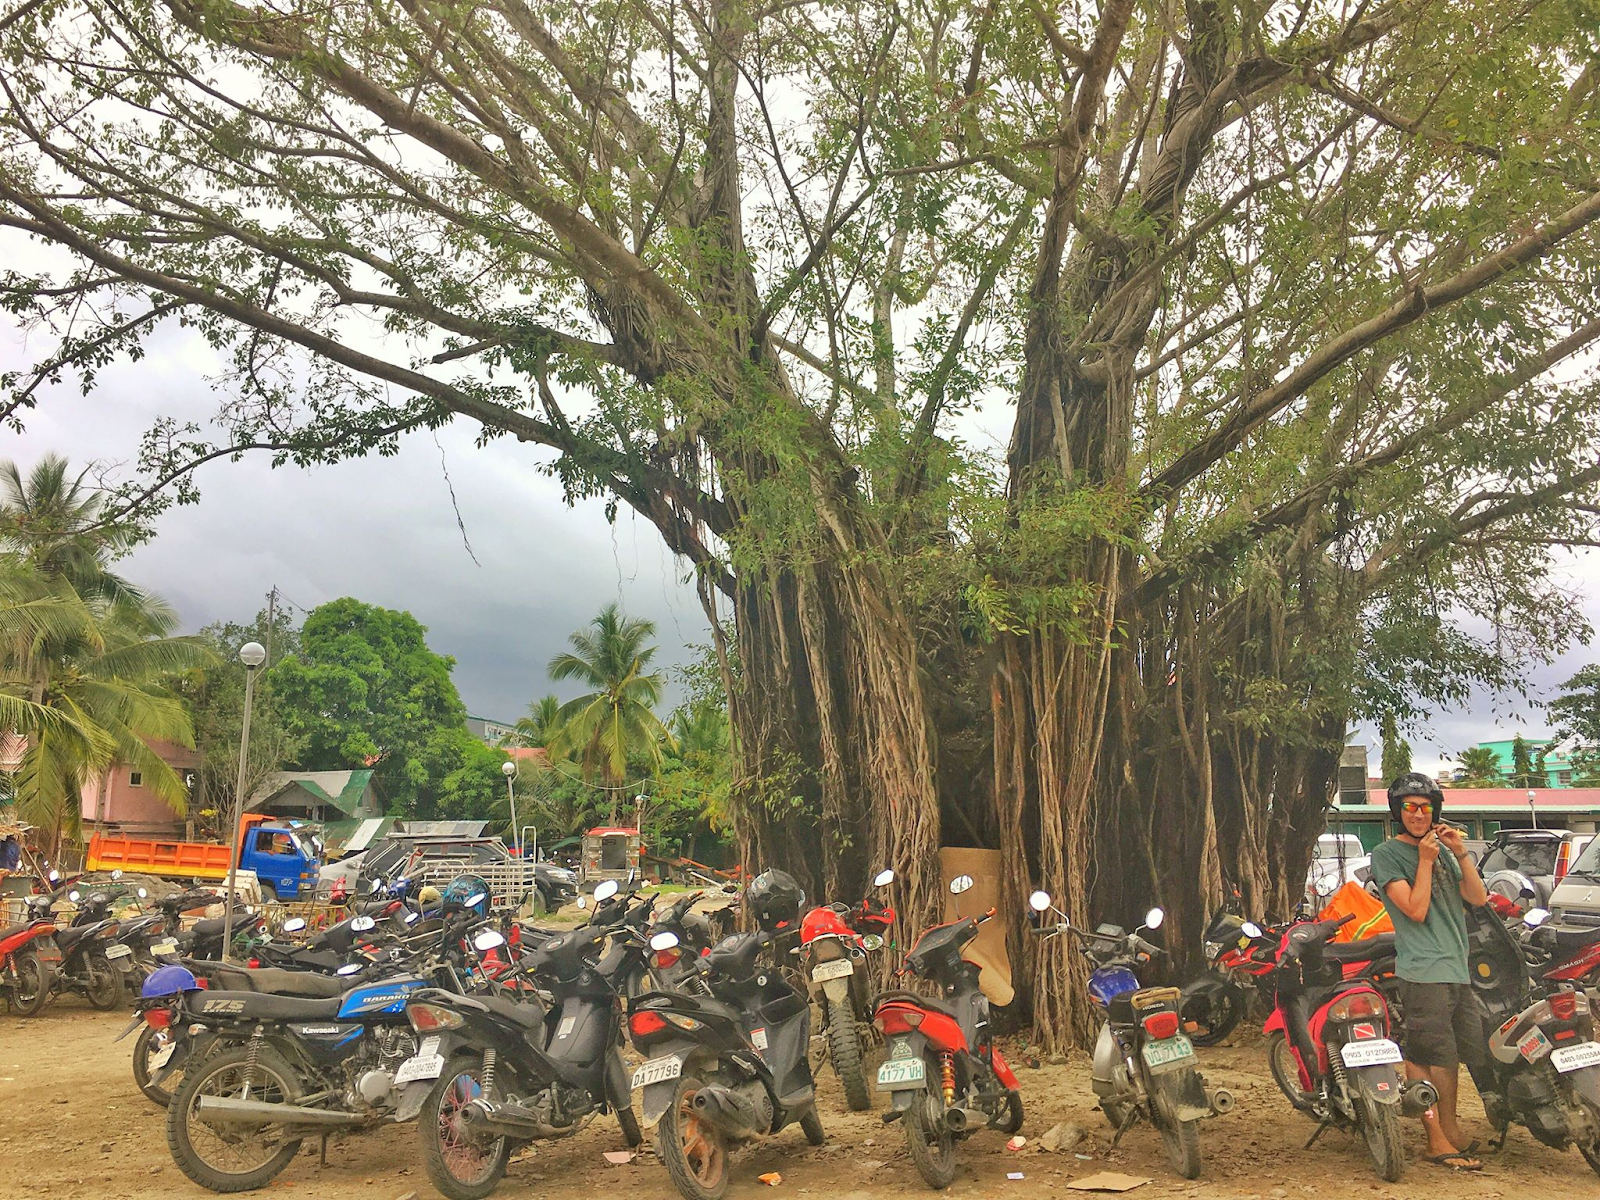 motorcycle  bike rental shops puerto galera